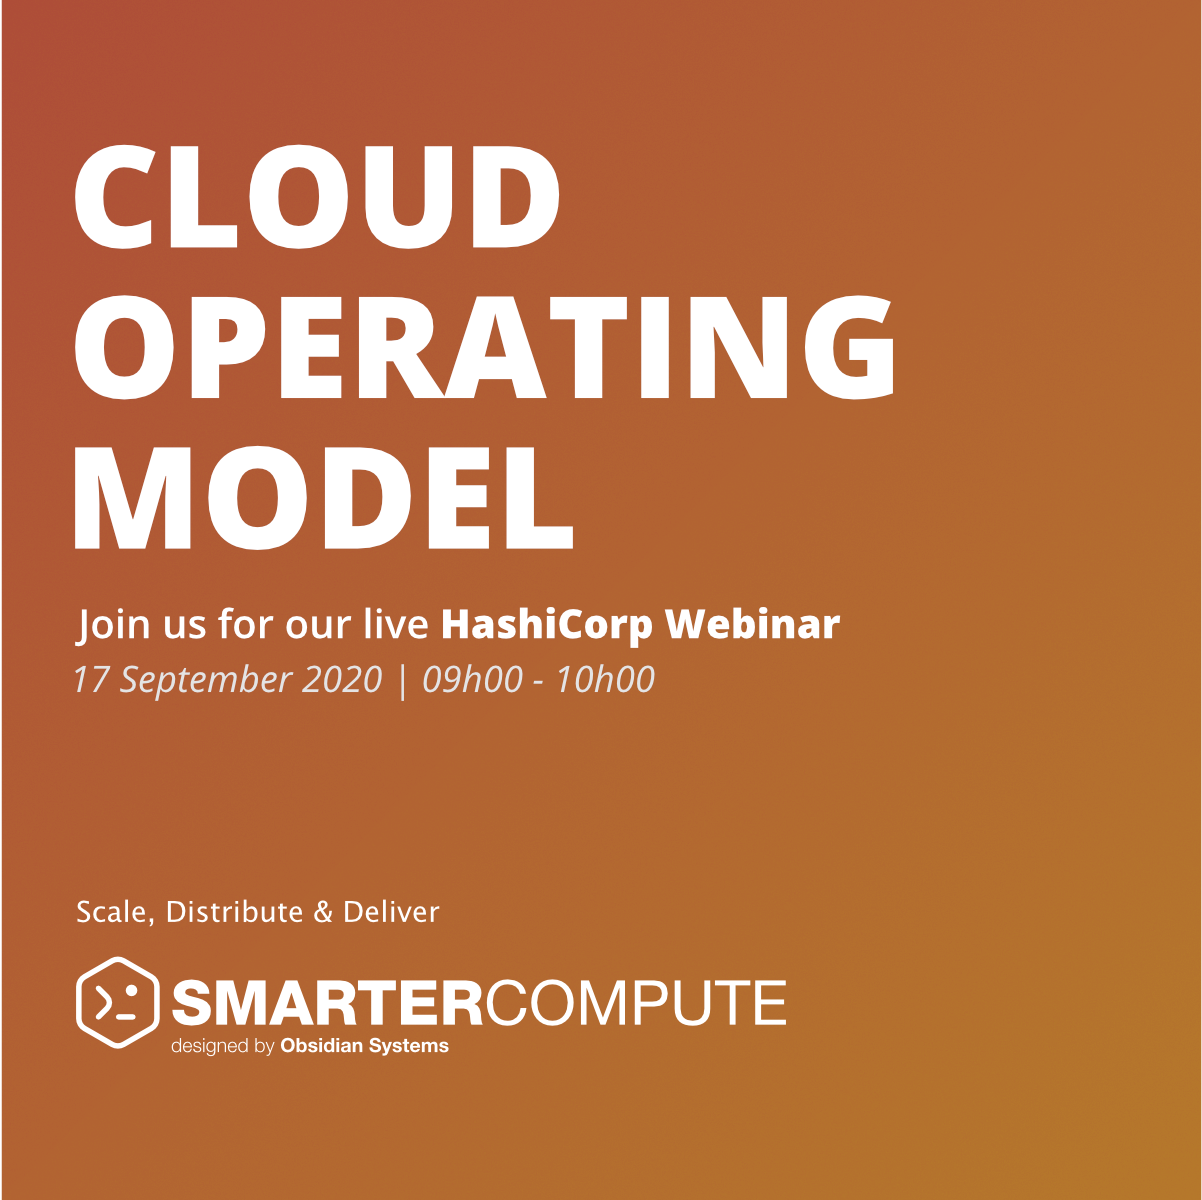 Cloud Operating Model with HashiCorp